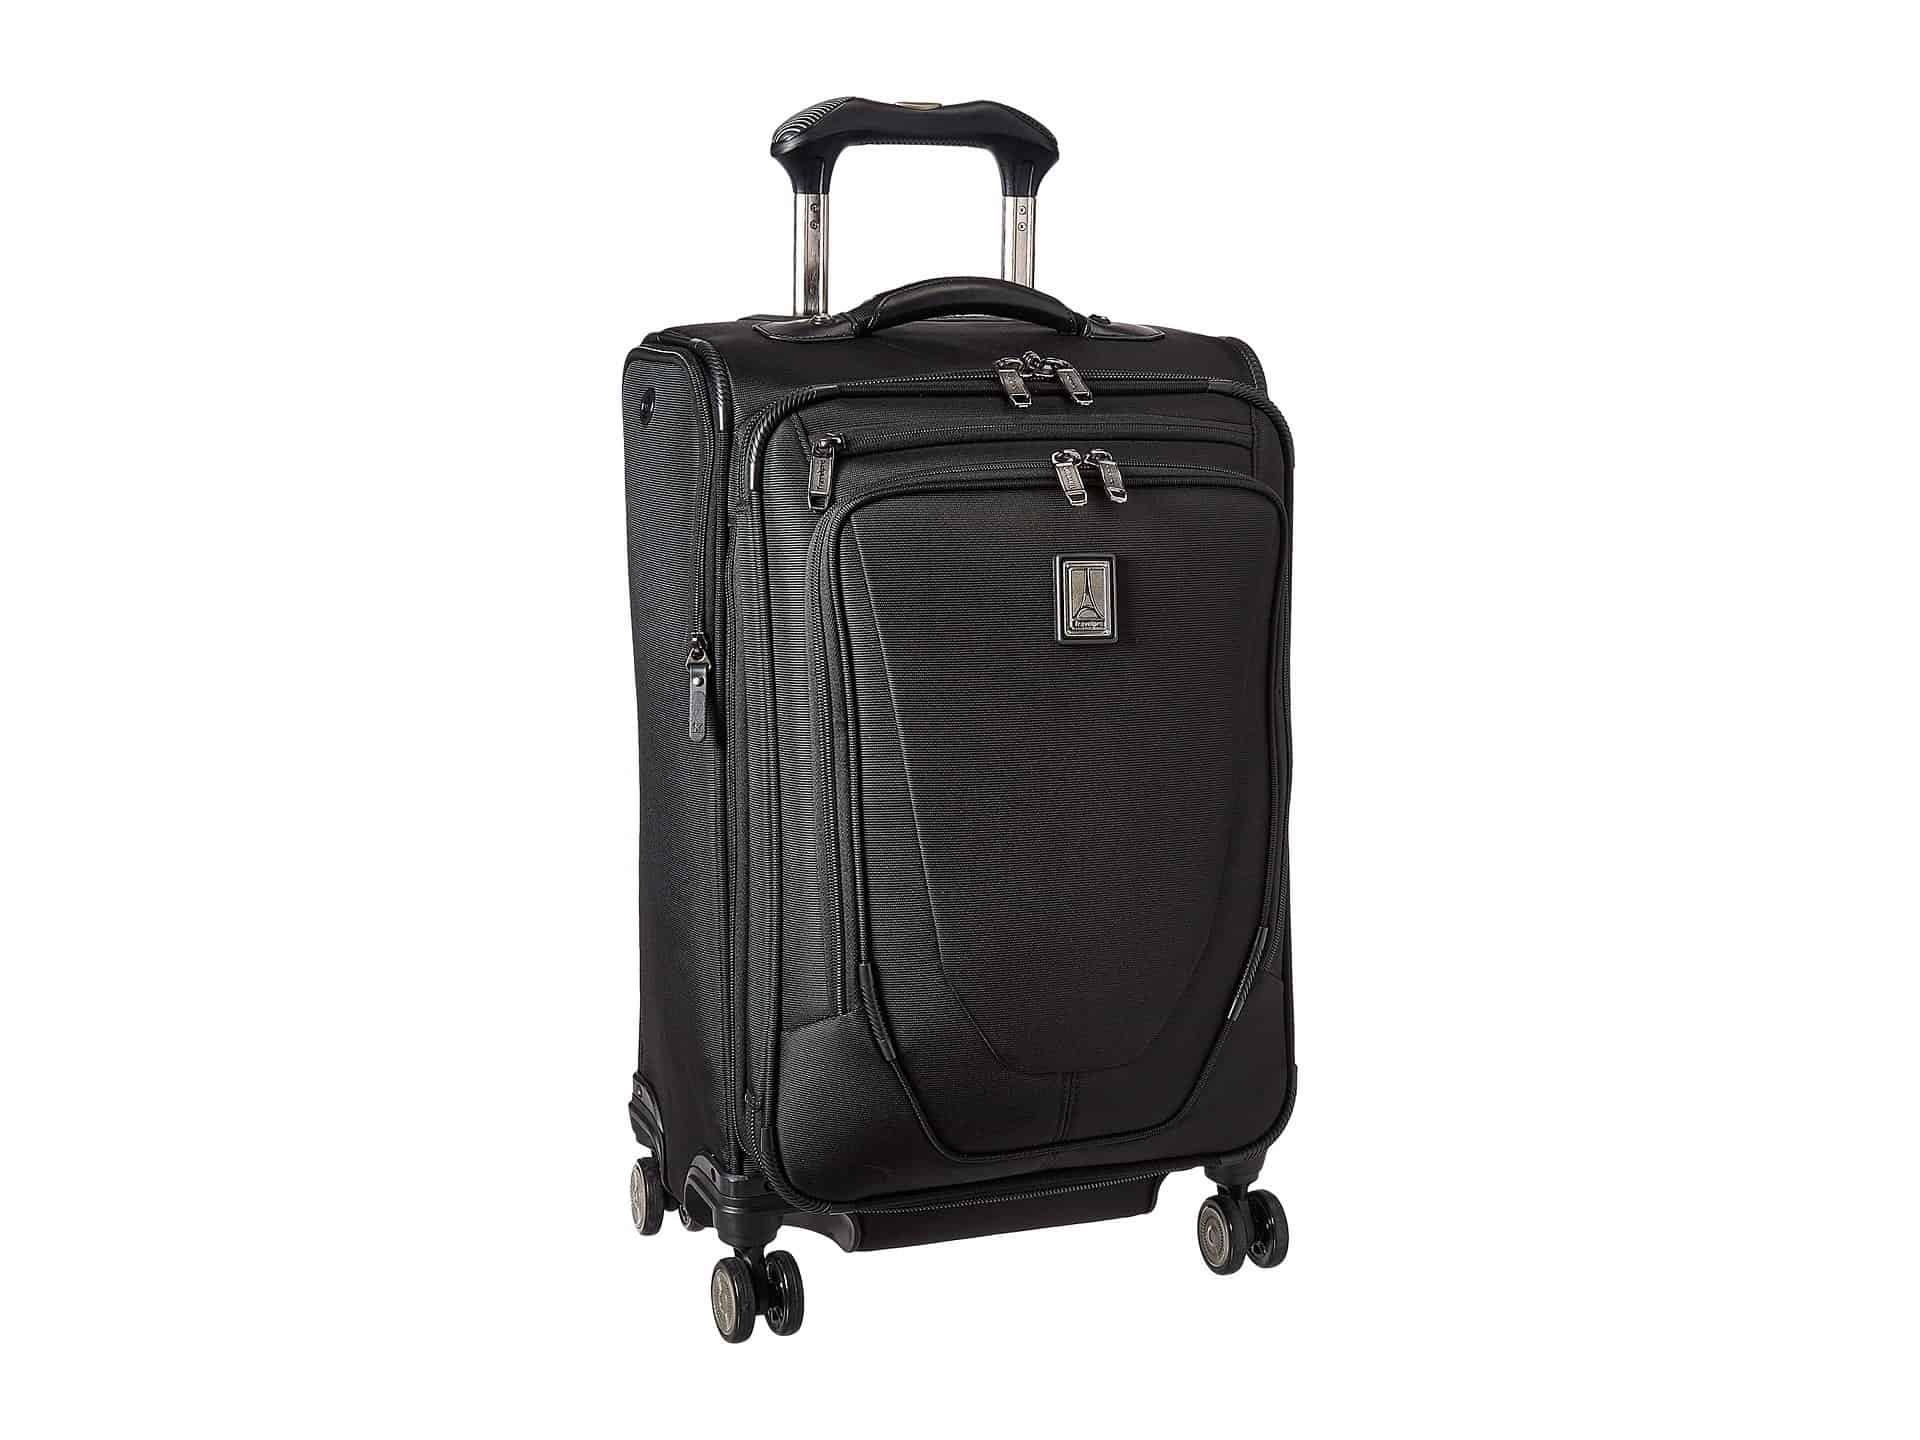 Best Suitcases for Travel Overseas